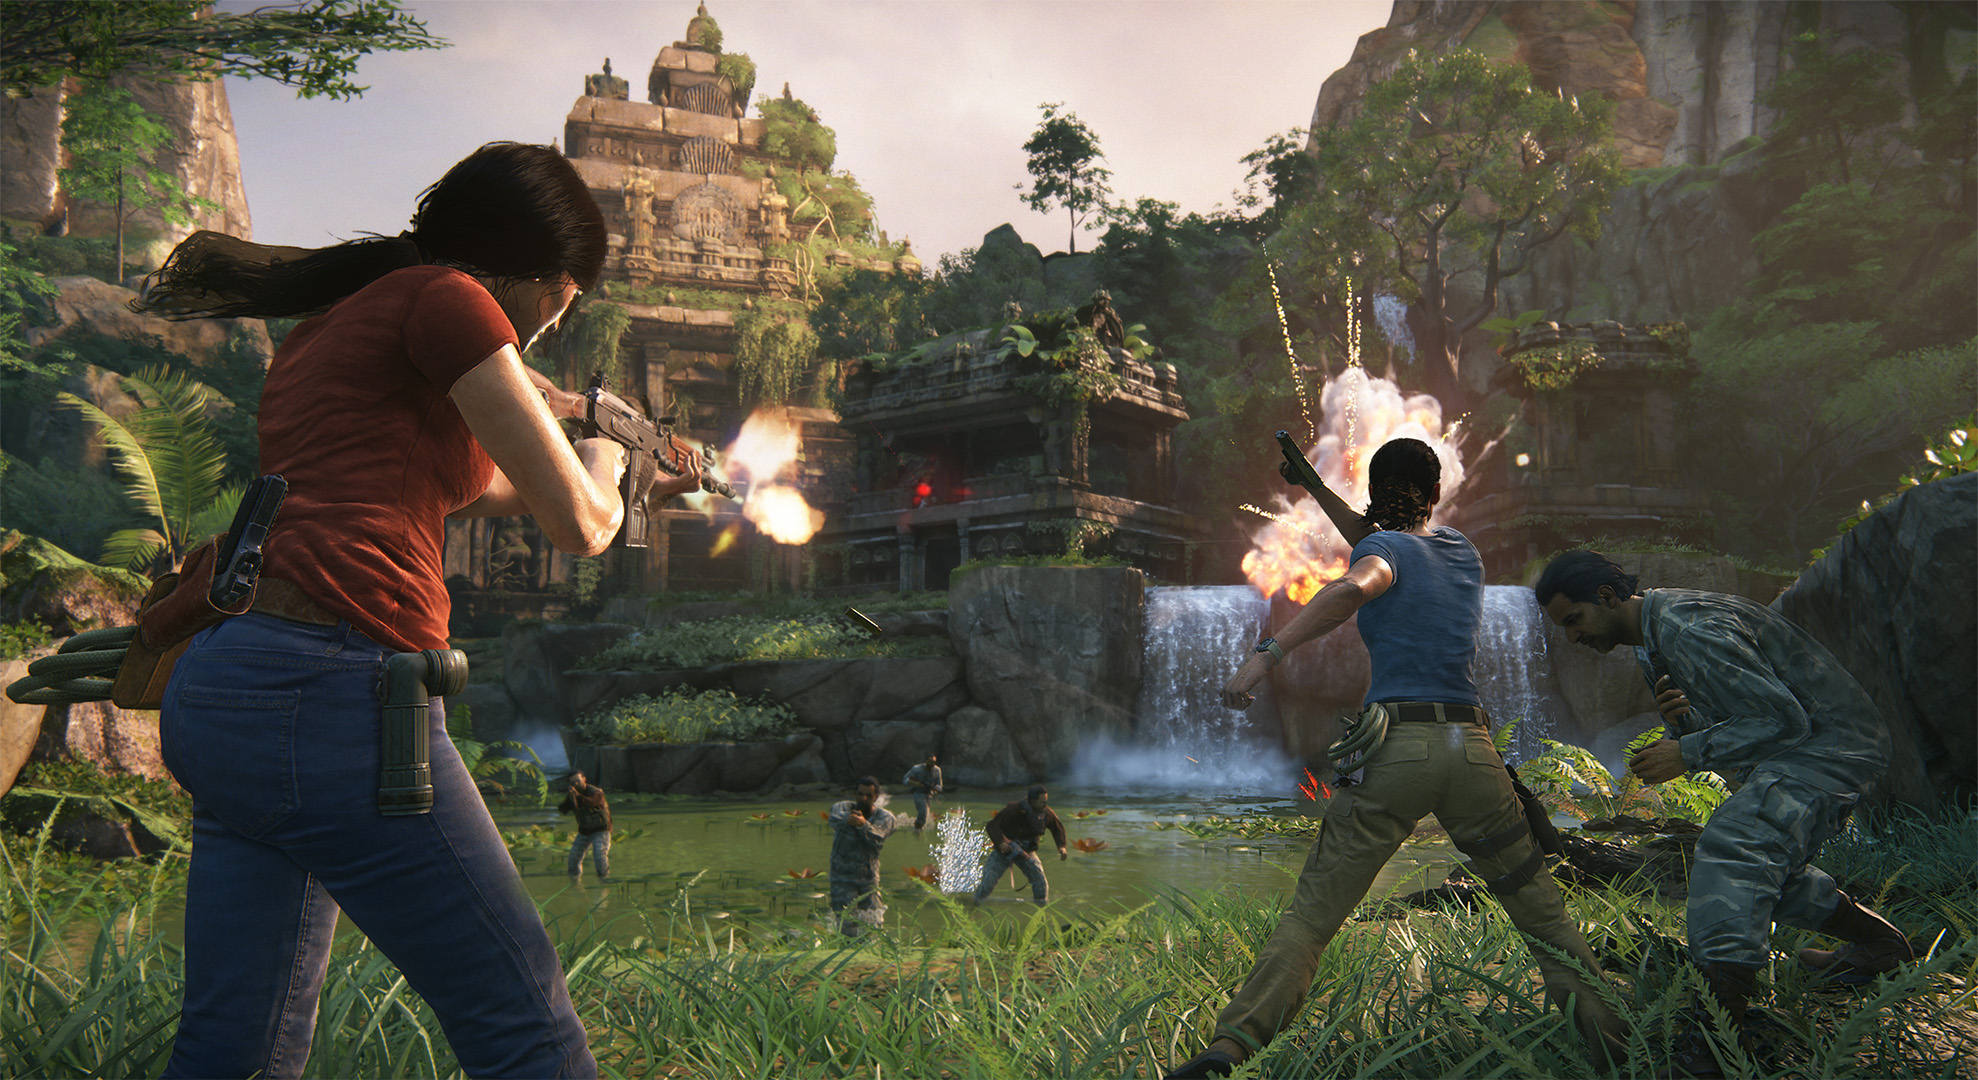 The Uncharted series has sold 41.7 million copies to date